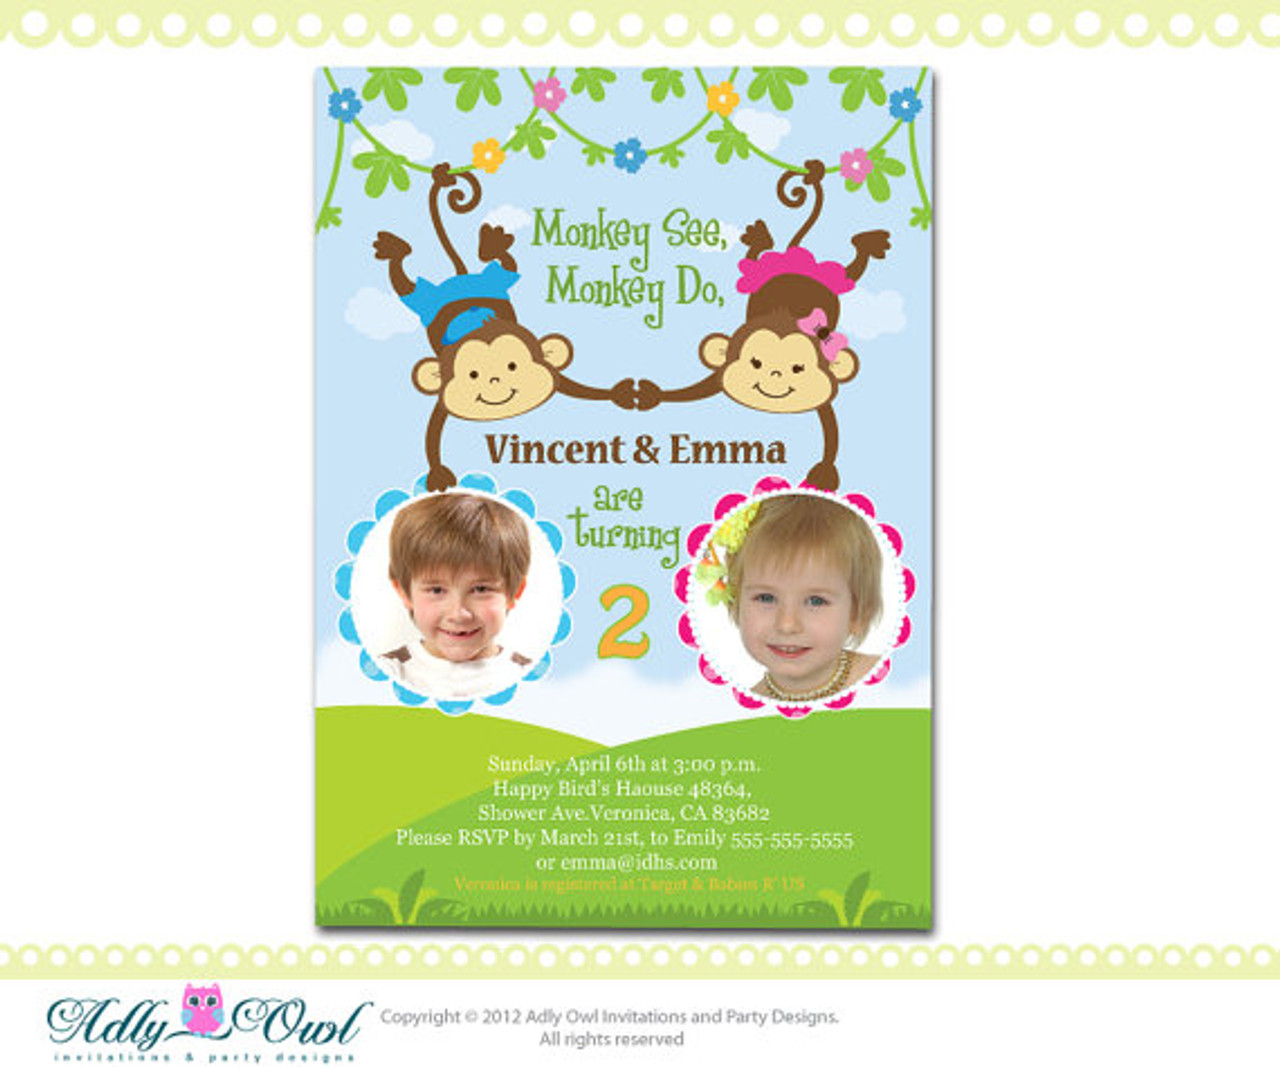 personalized twin invite second birthday invitation card for boy and girl with monkeys only digital file you print